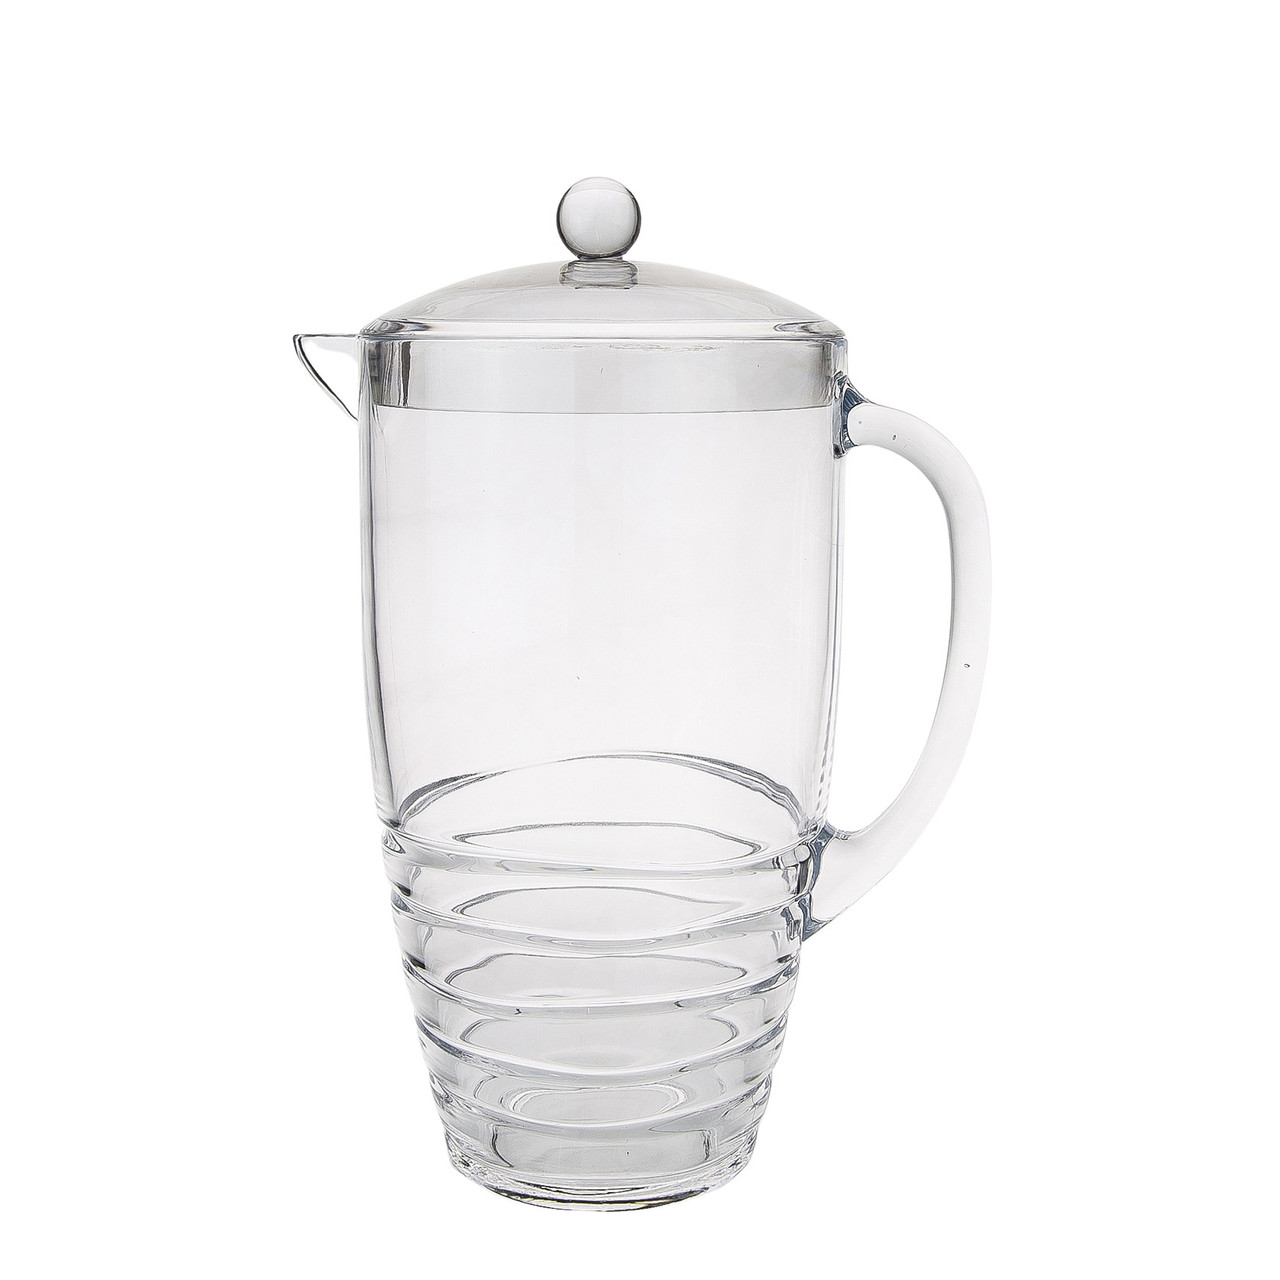 KITCHENBASICS ACRYLIC JUG - 2.4L